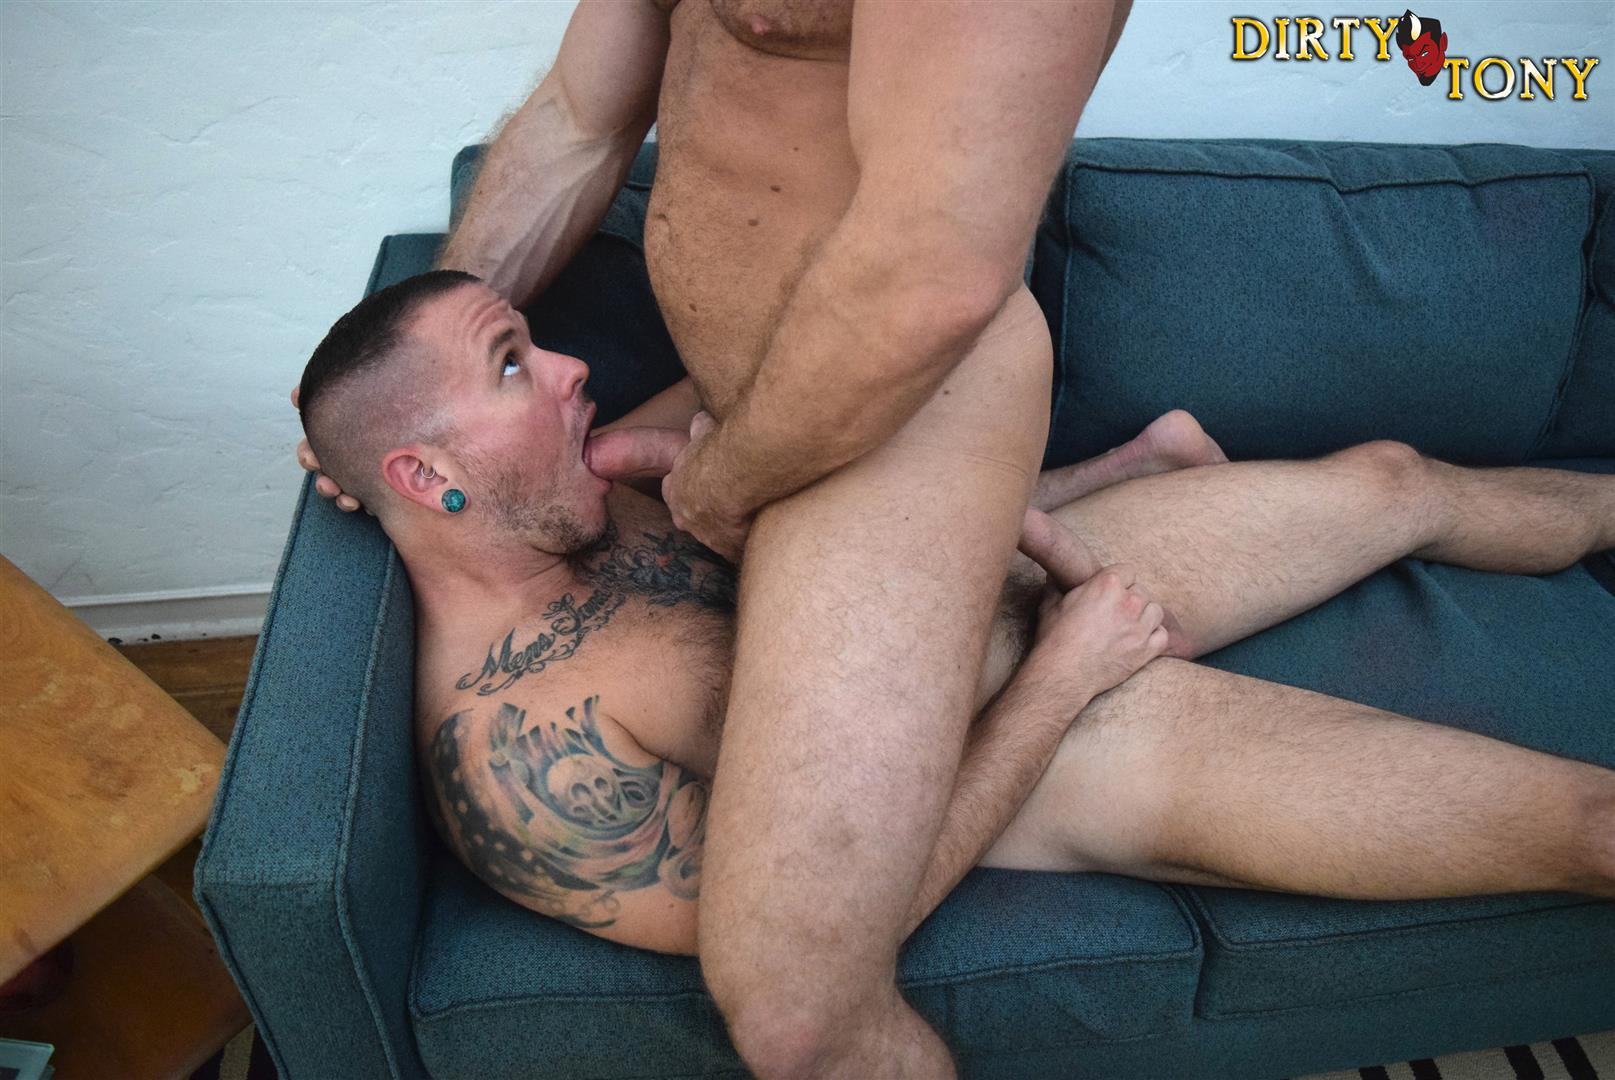 Dirty-Tony-Shay-Michaels-and-Max-Cameron-Hairy-Muscle-Hunk-Bareback-Amateur-Gay-Porn-08 Hairy Muscle Hunk Shay Michaels Barebacking Max Cameron